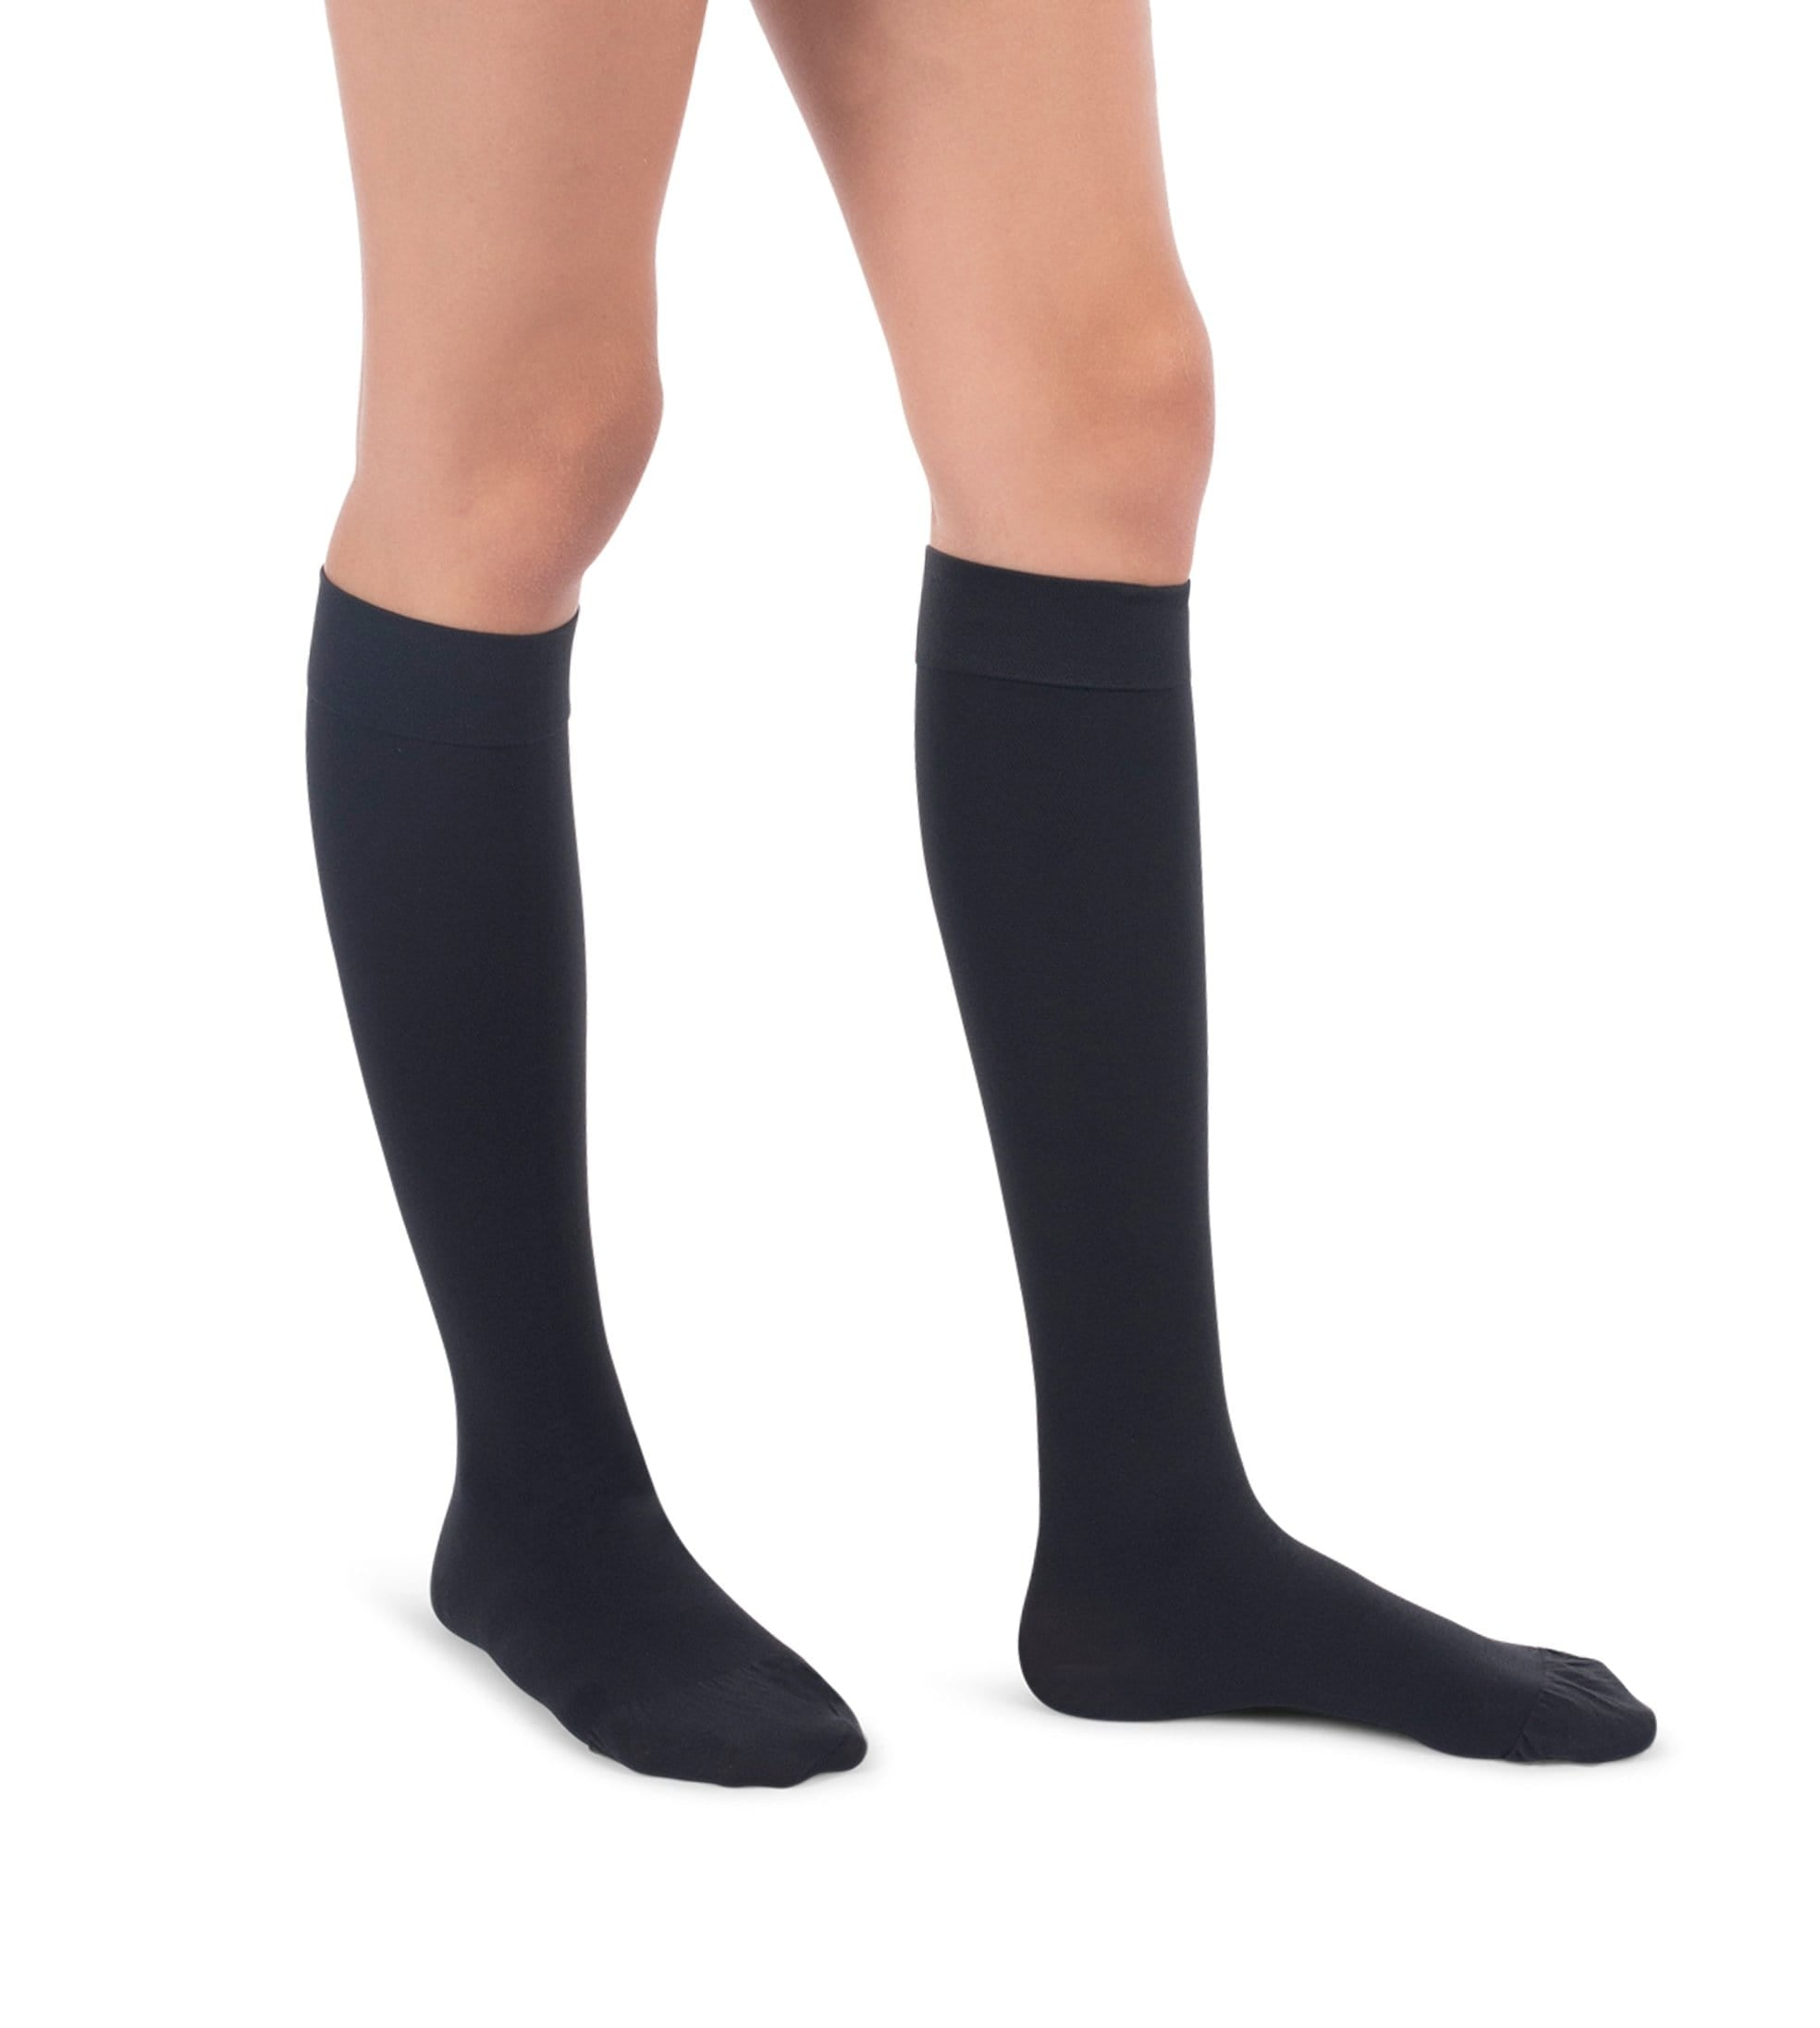 Knee High Compression Stockings, 20-30mmHg Surgical Weight Closed Toe, Petite Short 222